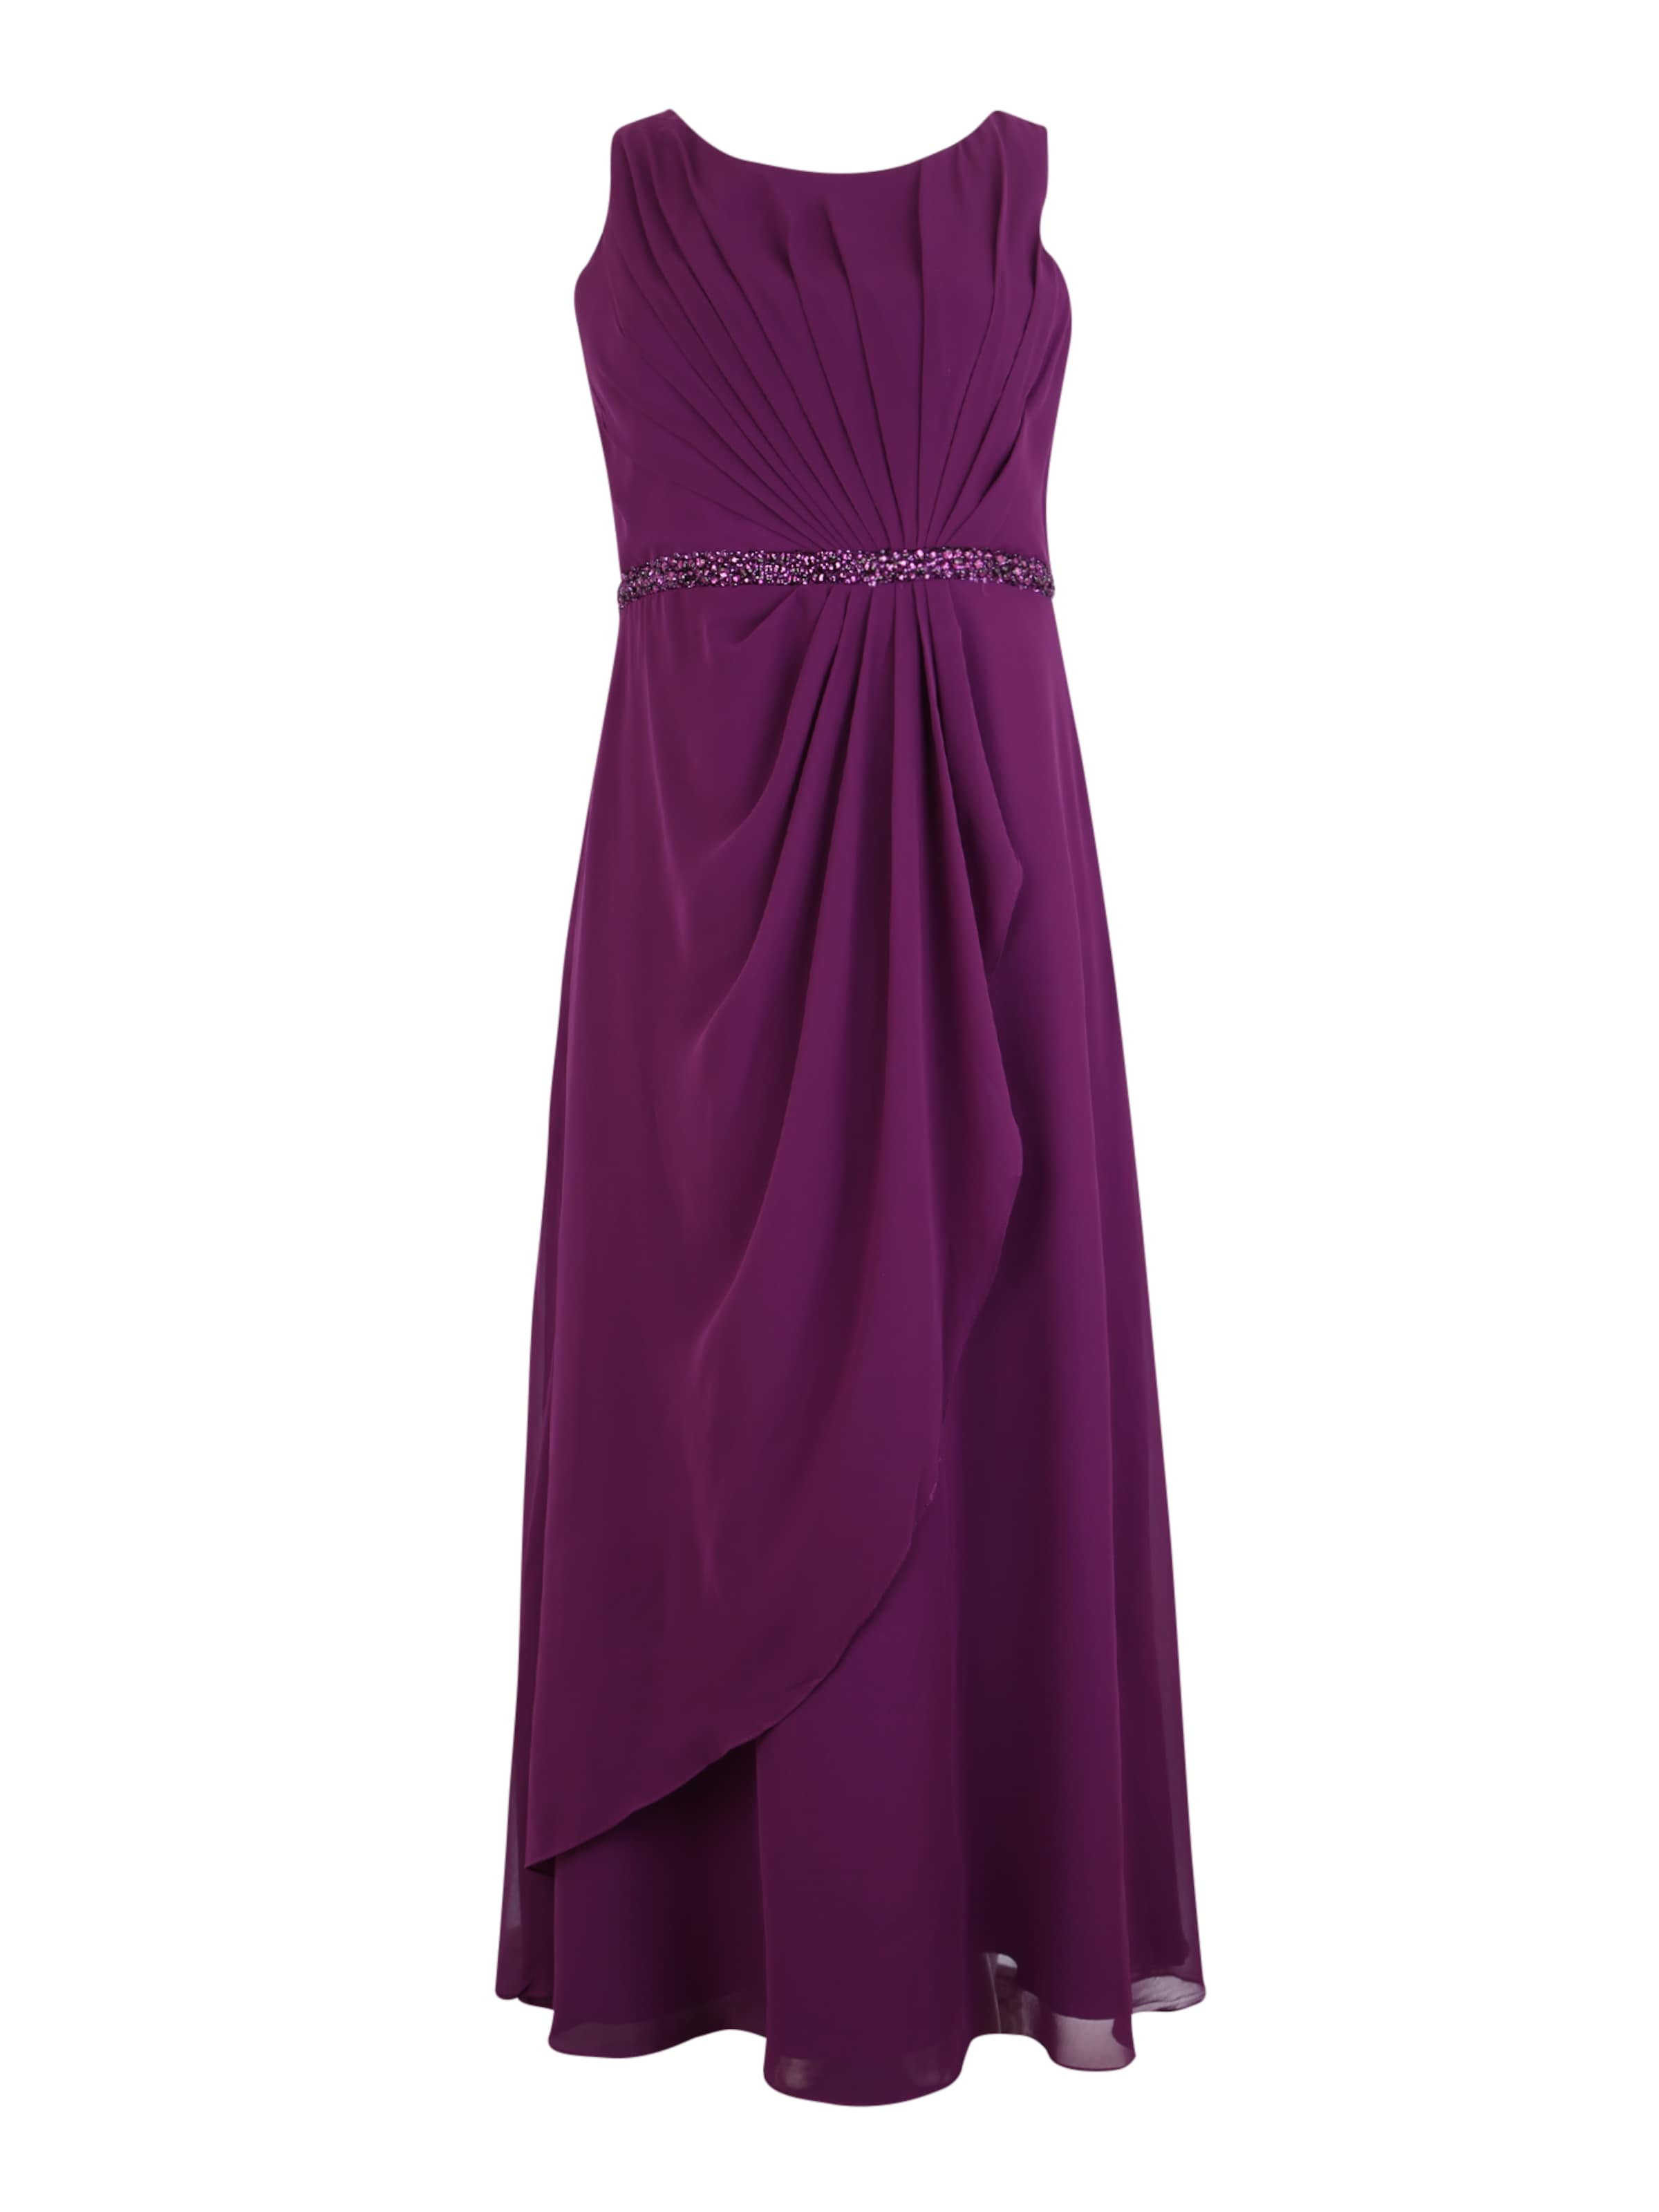 Kleid Curves Aubergine 'gross In Pleat' My Mascara 6yvfgYI7b